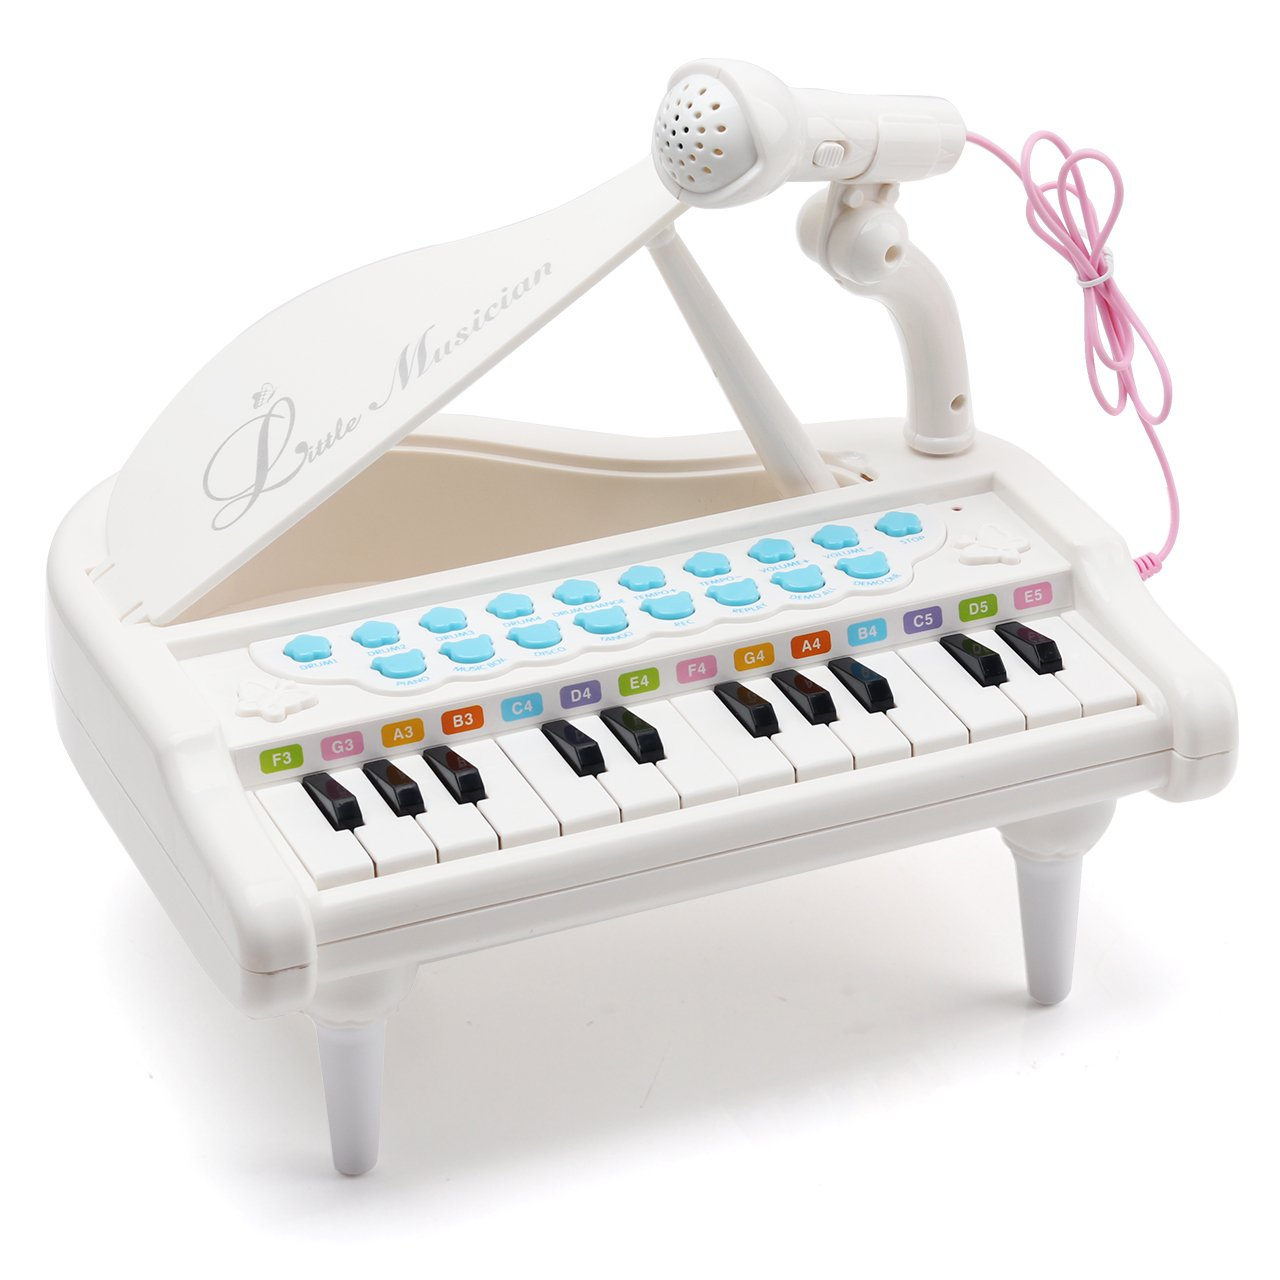 Amy & Benton Piano Keyboard Toy for Kids 24 Keys White Multifunctional Toy Piano with Microphone for Toddlers